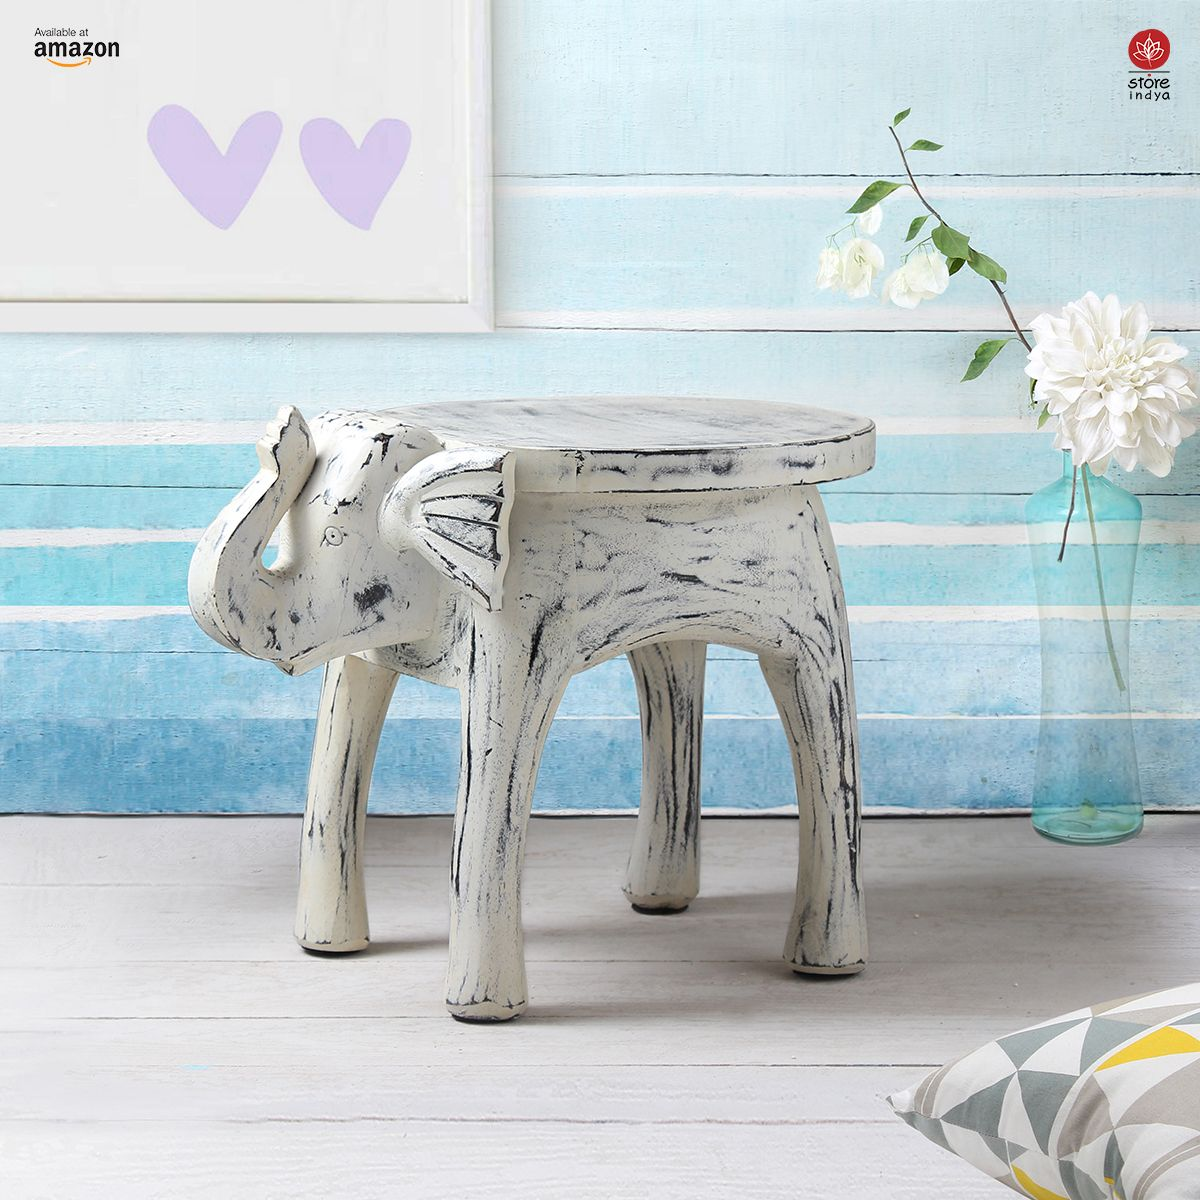 Amazon.com | Store Indya | Wooden Side Table End Table Round Bedside ...